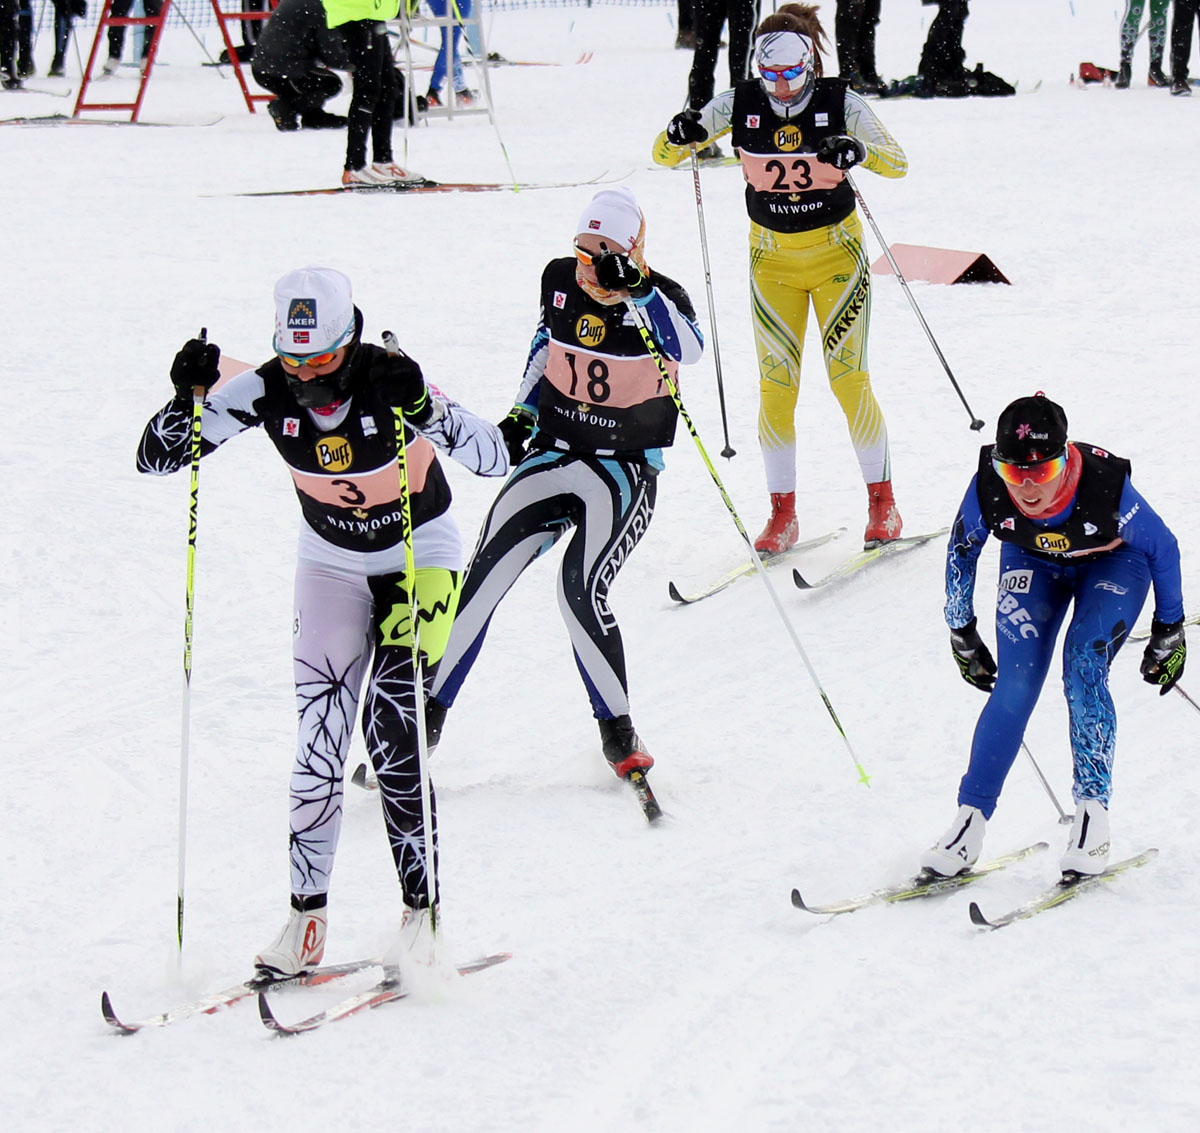 This pic is from our archives, but it must be noted that Maya MacIsaac-Jones (no 3)  won the Jr Women, while Angus Foster was top Jr men (photo: Julie Melanson)/Cette hoto est de nos archives, mais il faut souligner que Maya MacIsaac-Jones (no 3) a enlevé l'épreuve chez les femmes juniors tandis qu'Angus Foster a dominé chez les juniors hommes (photo: Julie Melanson)